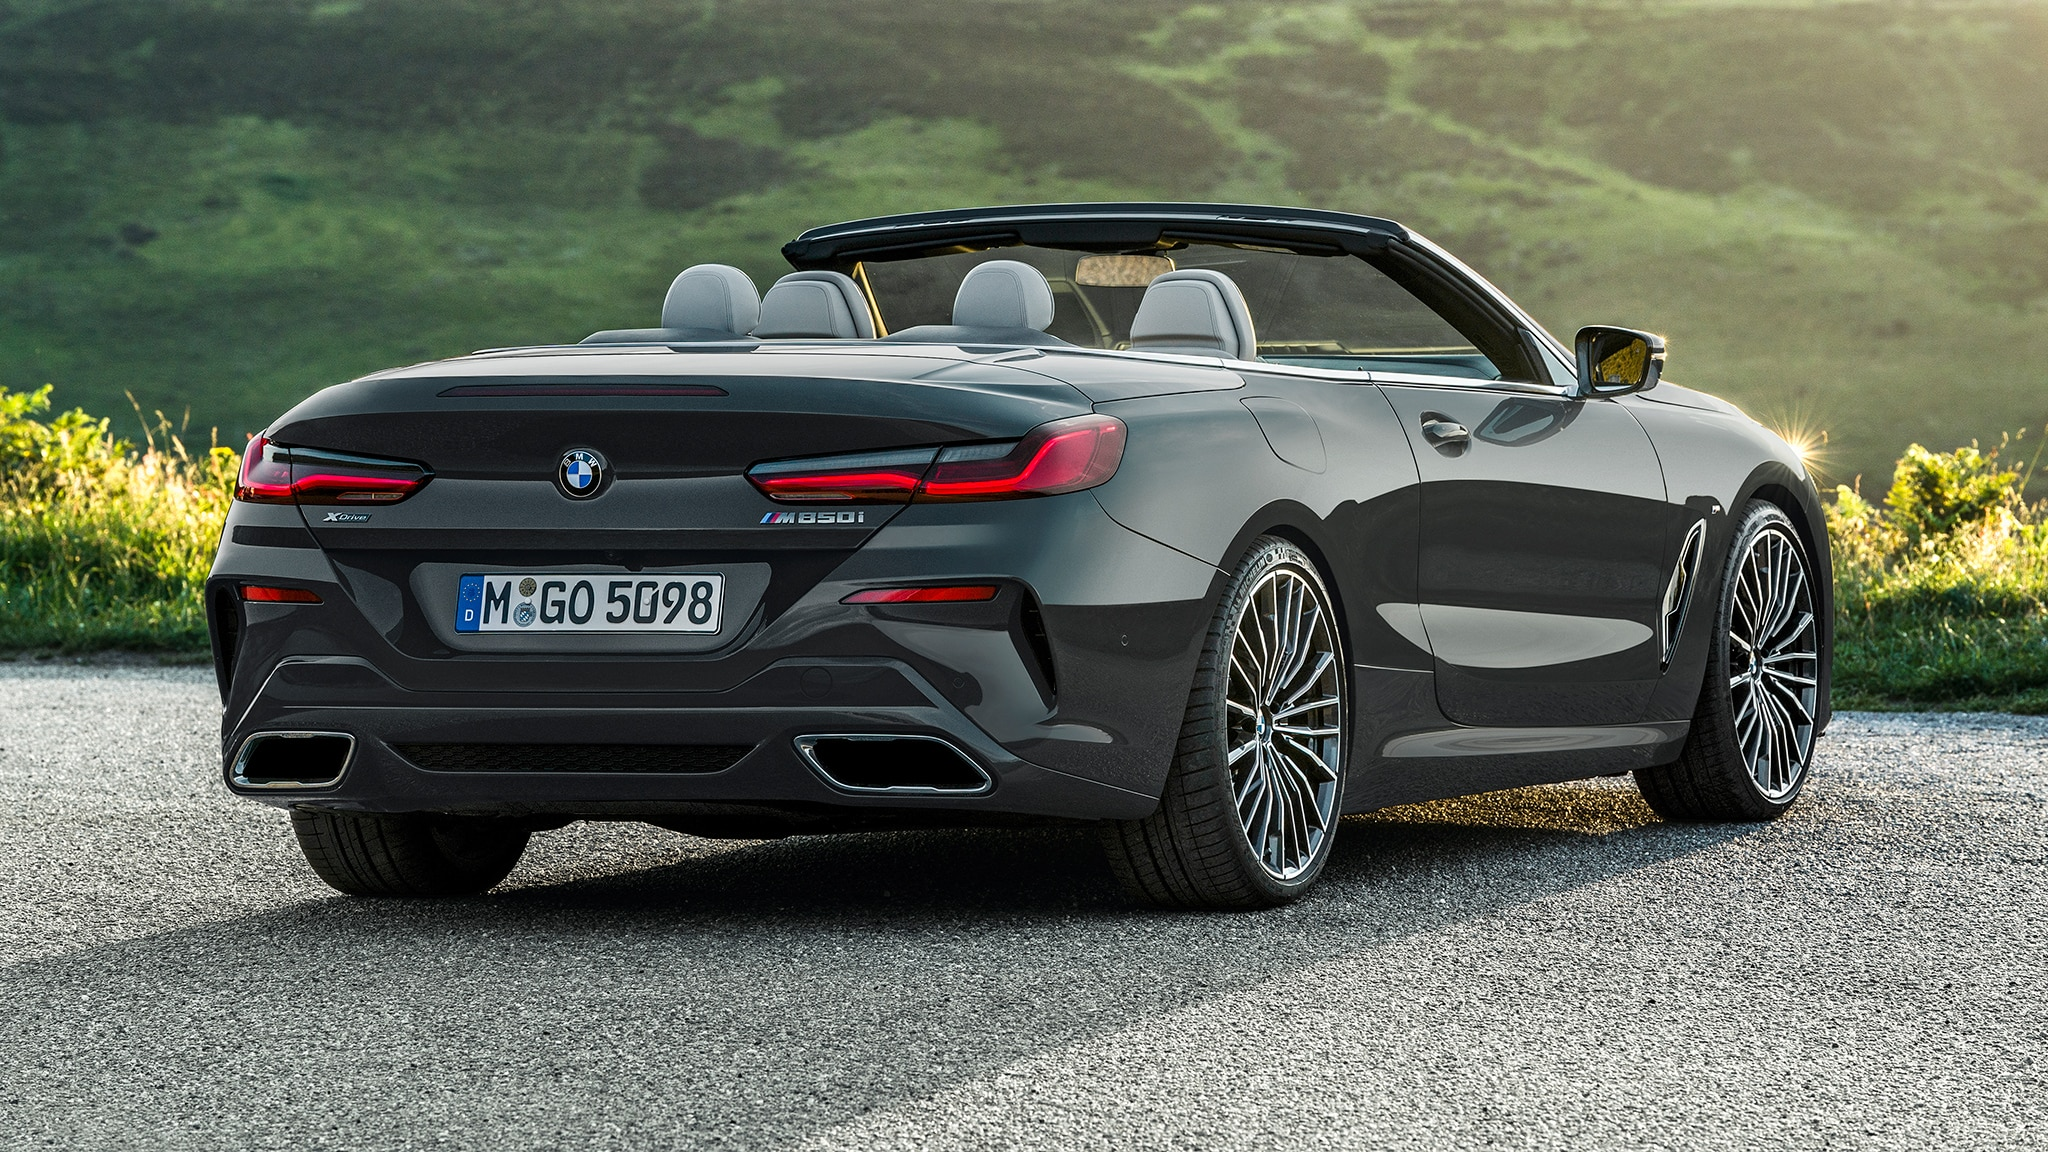 2019 BMW M850i Convertible Rear Side View Lights On